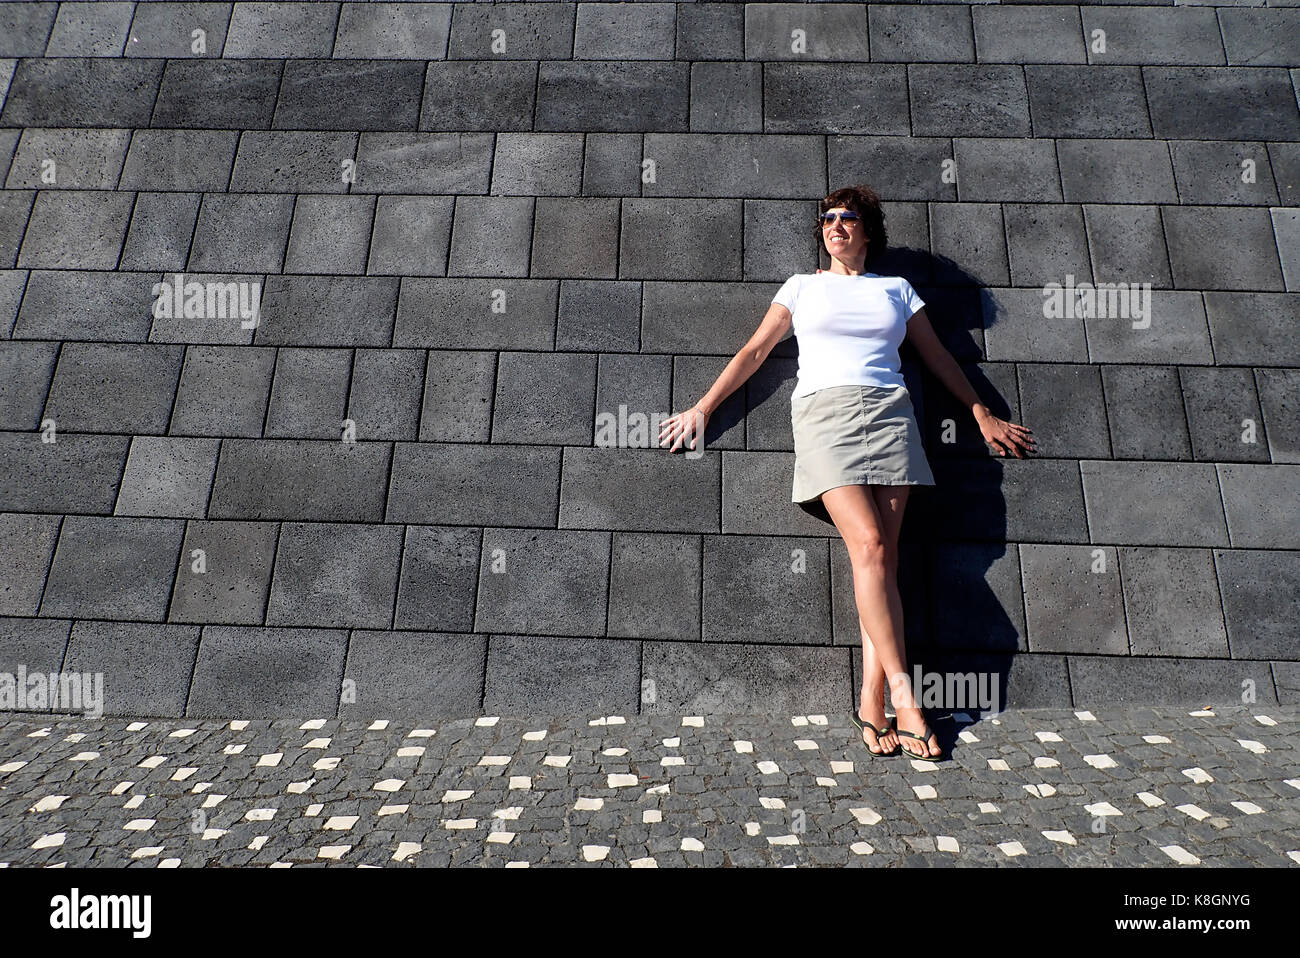 Woman Basalt Wall Horta City Faial Island Azores Portugal Europe - Stock Image